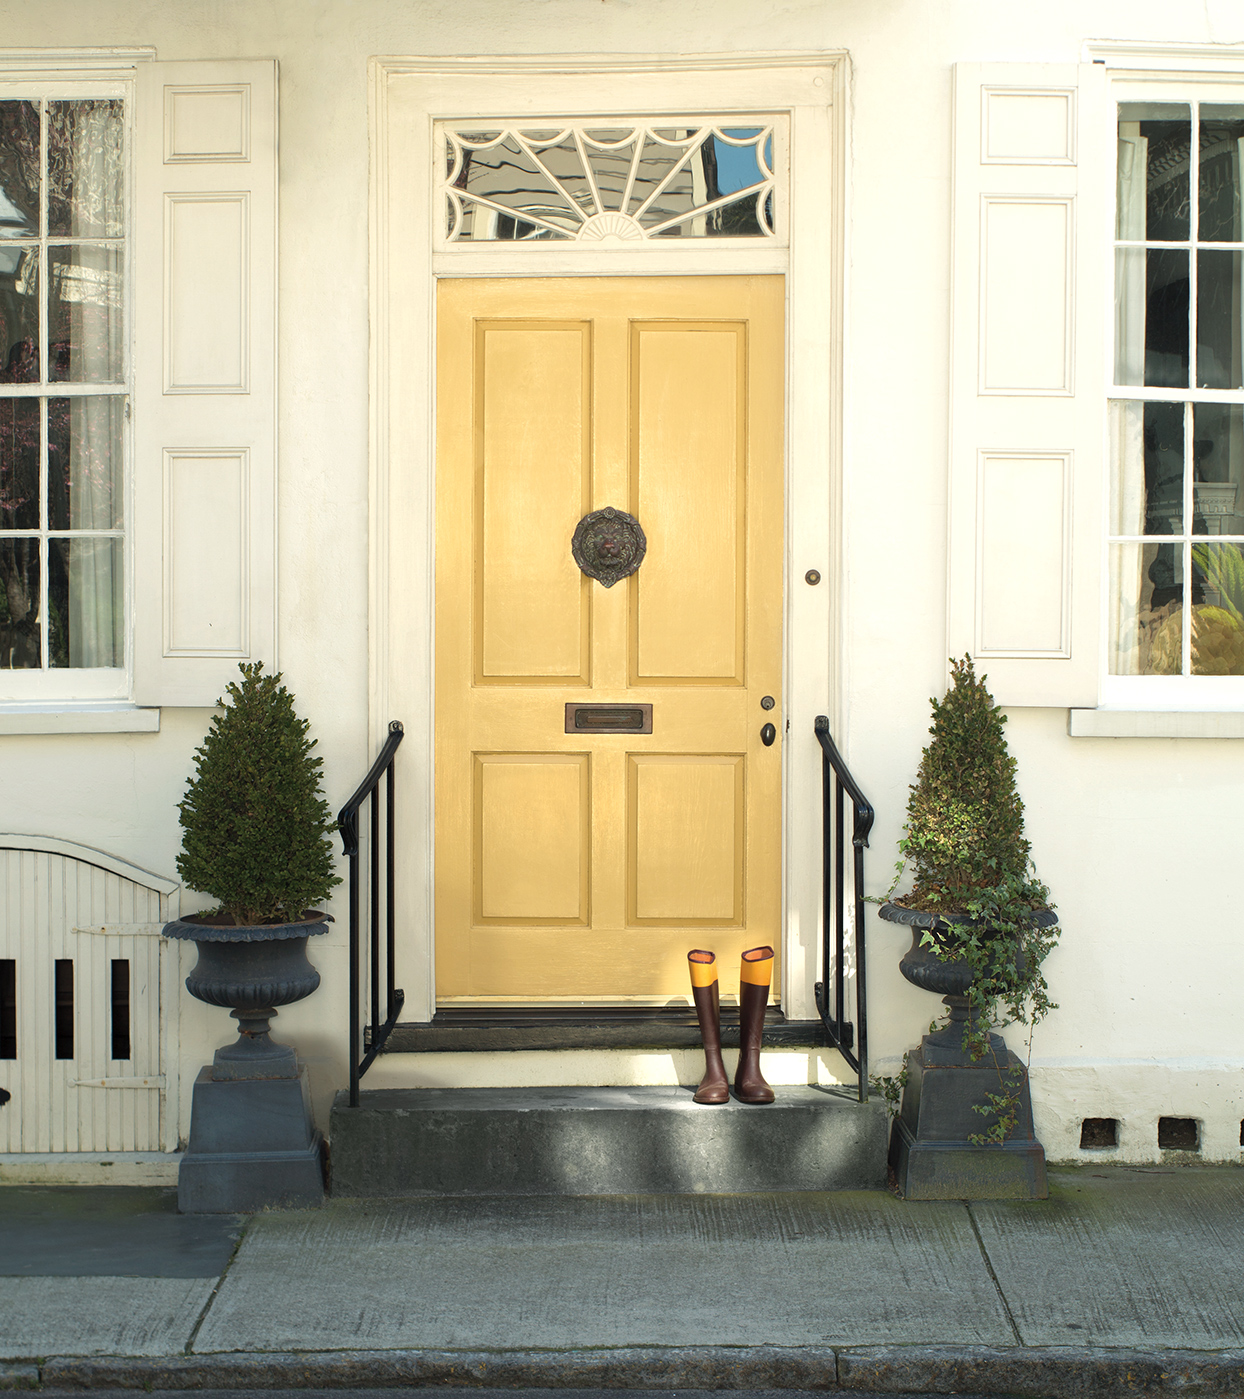 pale yellow front door on town house with tree decorations